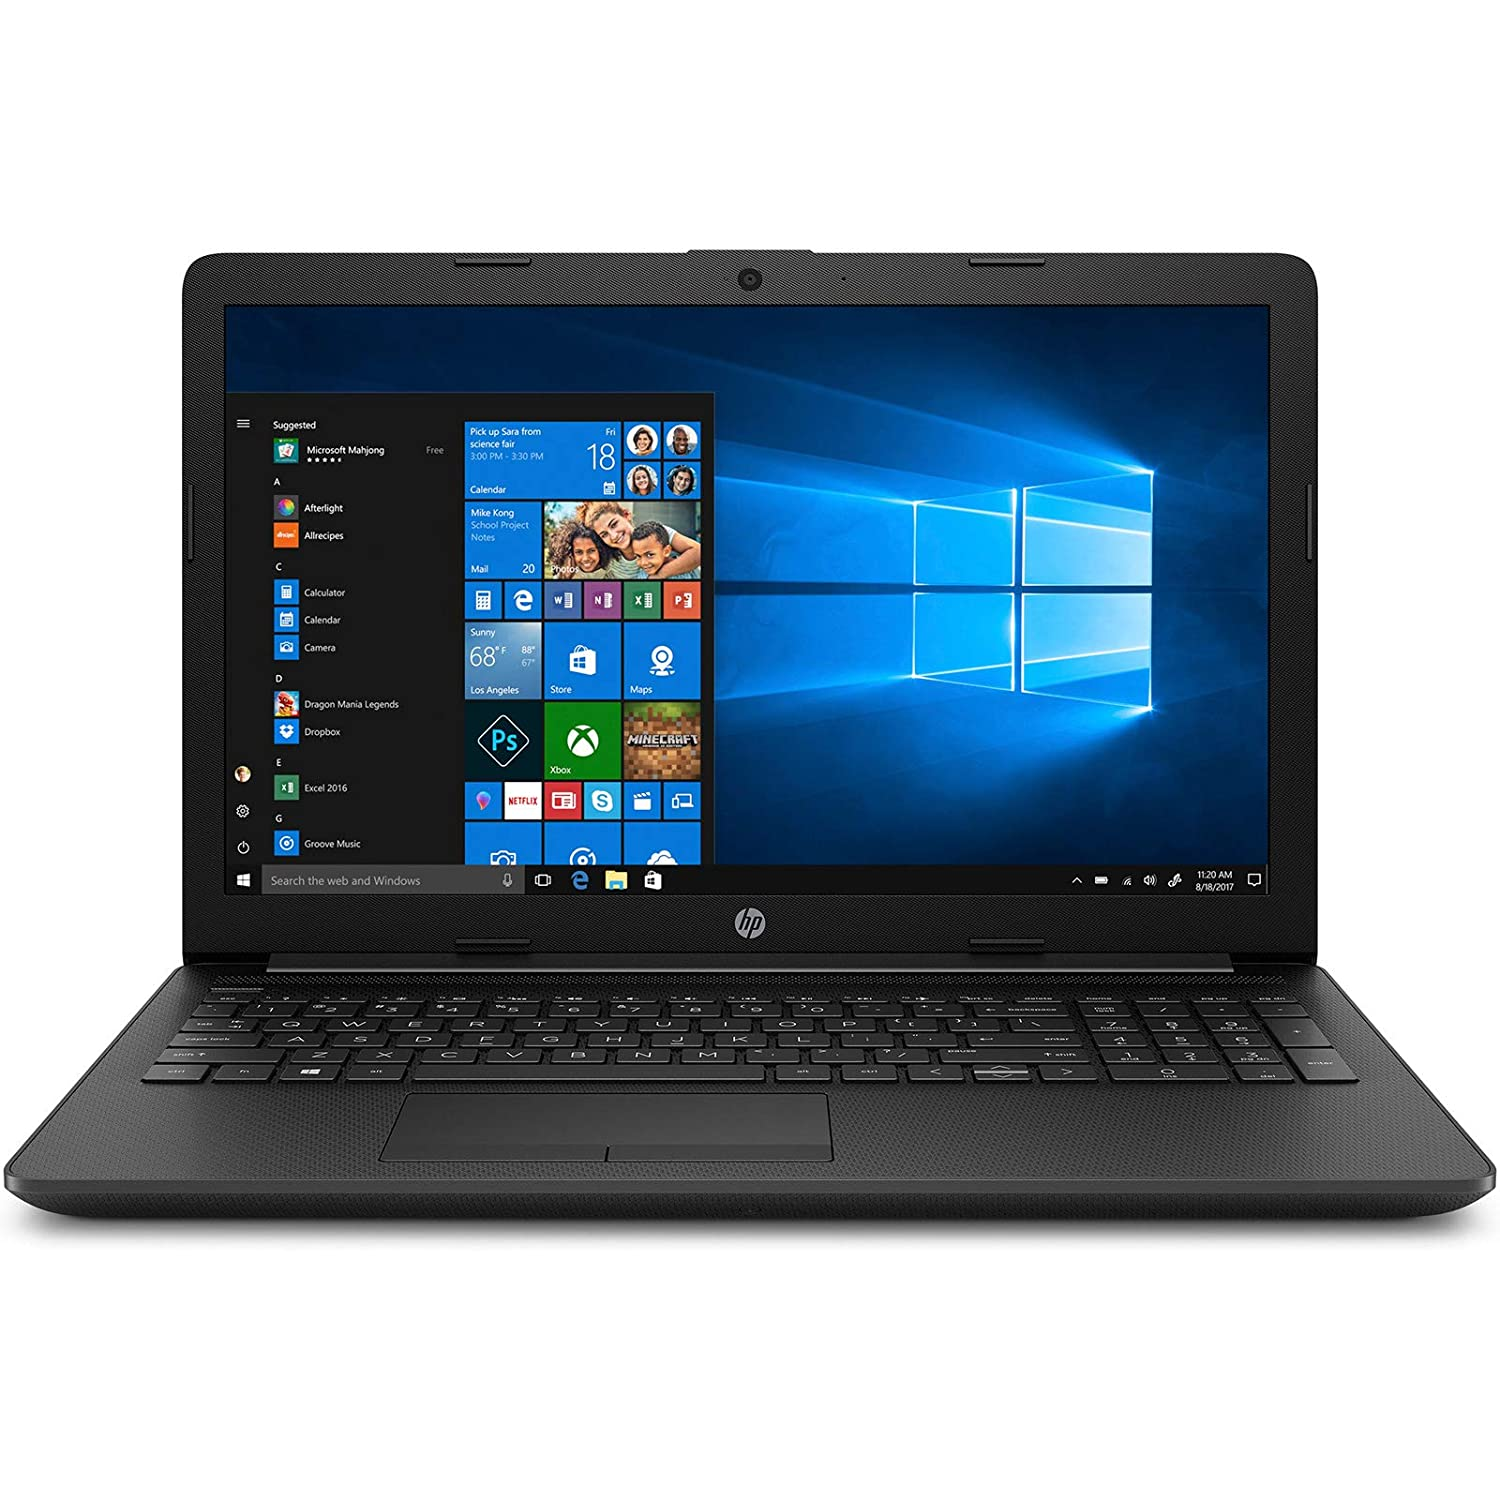 HP 15 AMD Athlon 15.6-inch HD Laptop (Athlon 300U/4GB/1TB HDD/Windows 10/Radeon Vega 3 Graphics/MS Office Home & Student/2.04 kg/Jet Black), 15 db1066AU